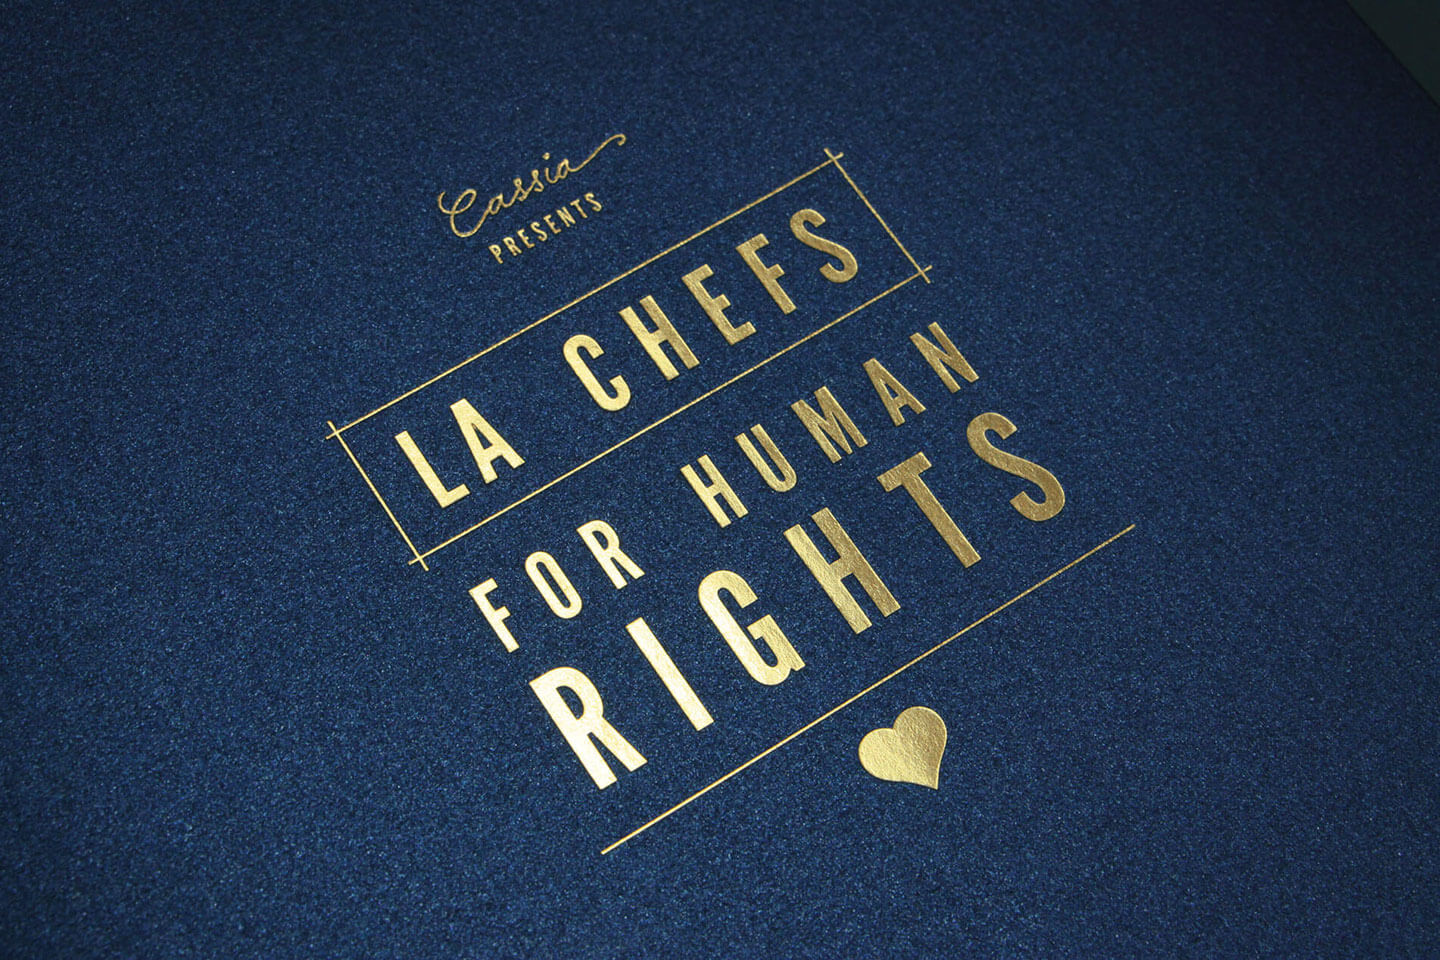 LA Chefs for Human Rights